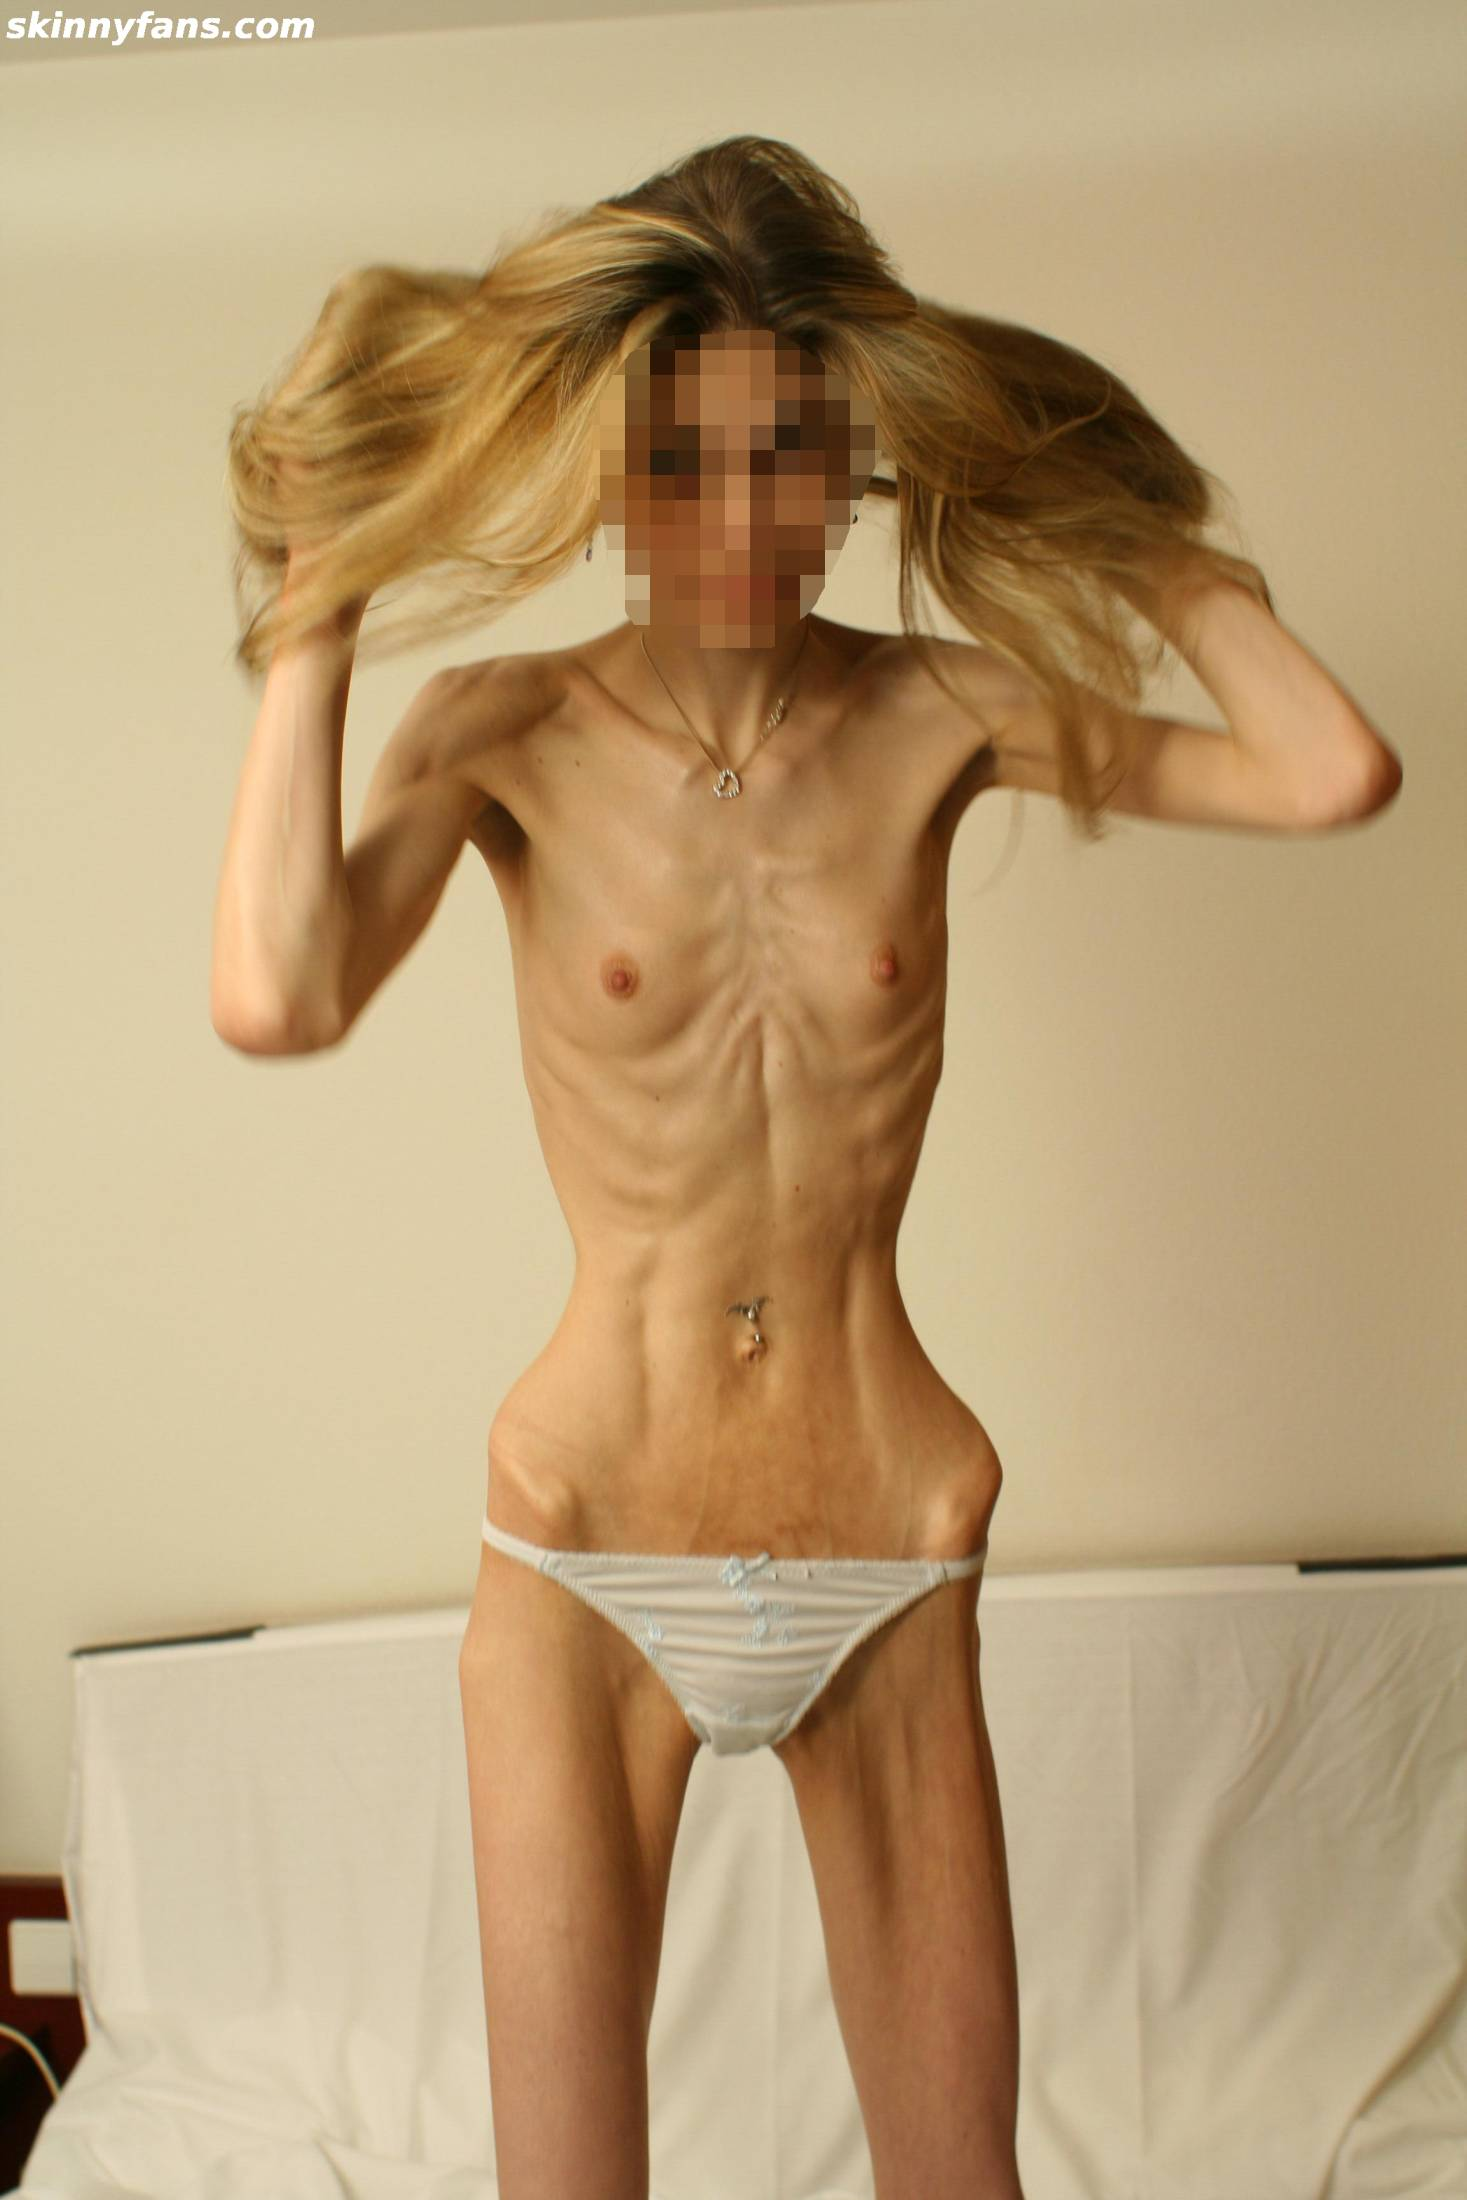 Anorexic Young Girl Exposes Her Small Breasts And Tiny Ass In The Shower